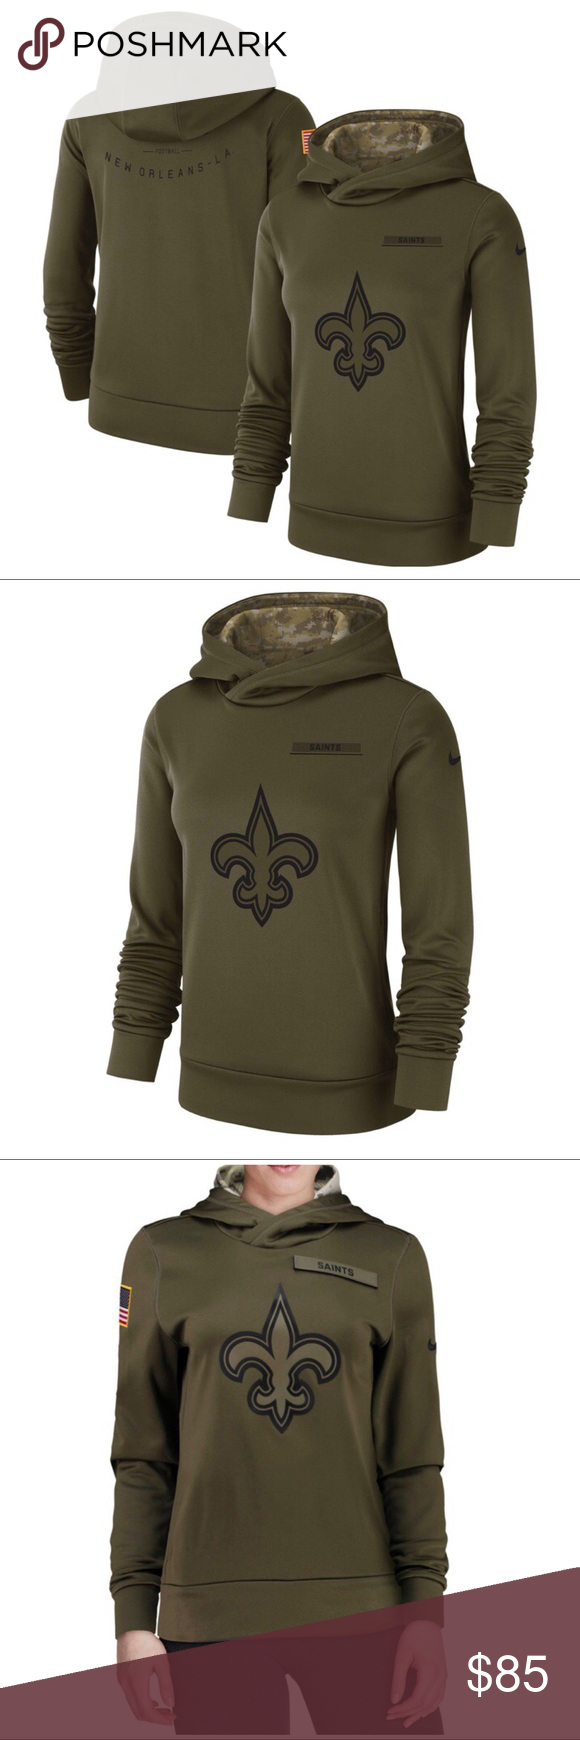 95cb8c64 NWT NO Saints Nike NFL Salute To Service Hoodie Brand new with tags ...